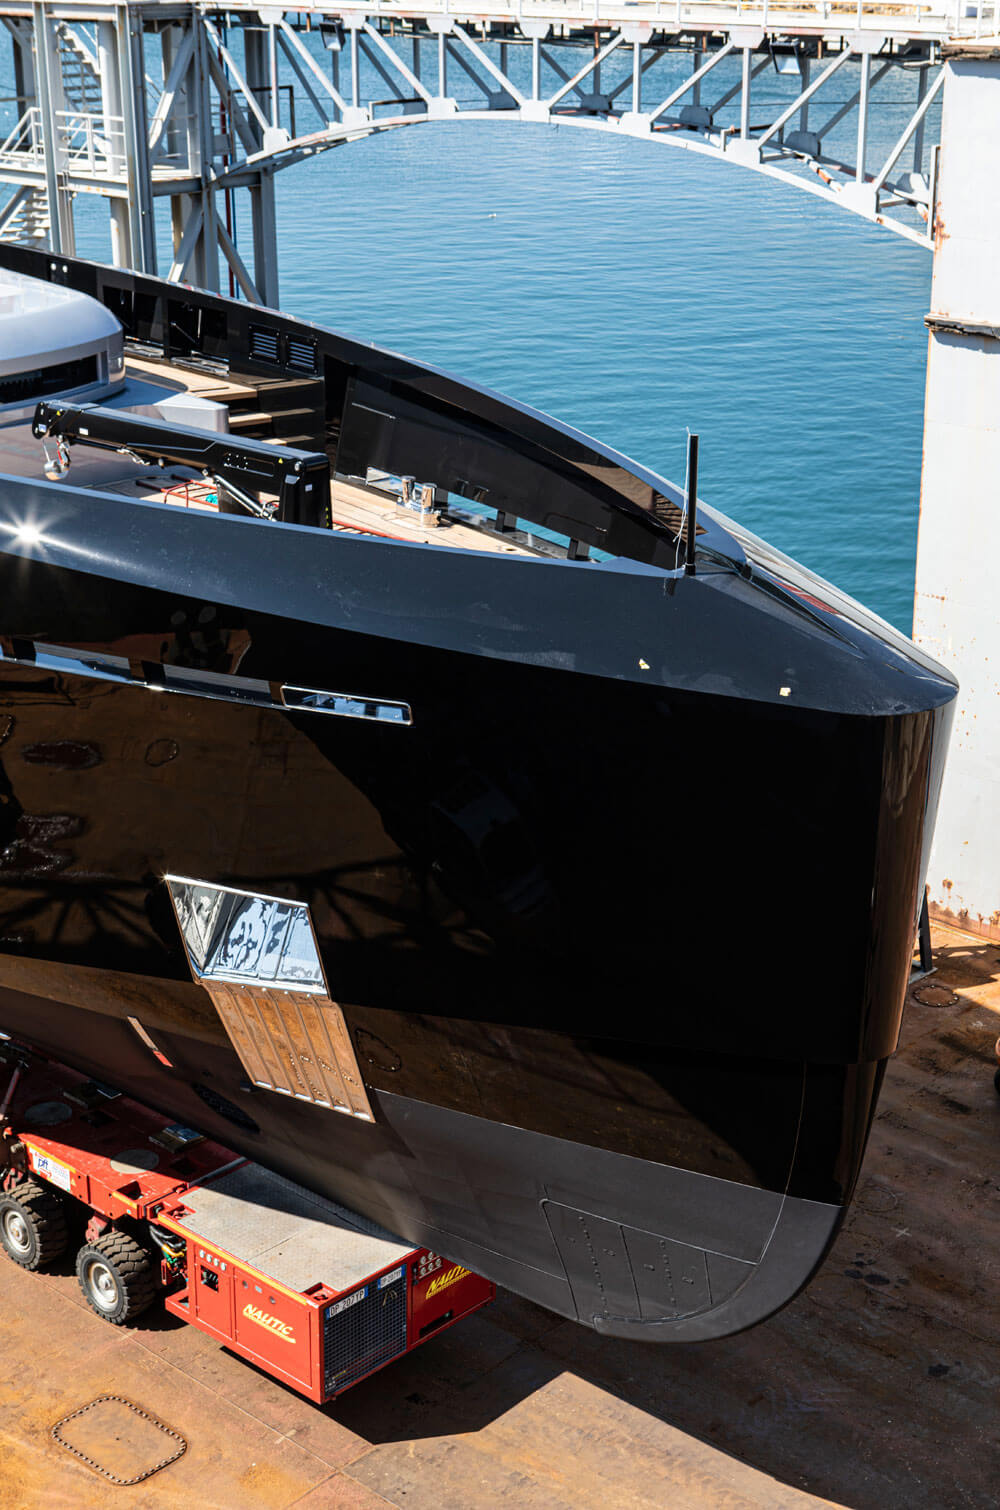 M/Y Olokun is built in lightweight aluminum but the superyacht hull can also be built in steel. Credit: Tankoa Yachts